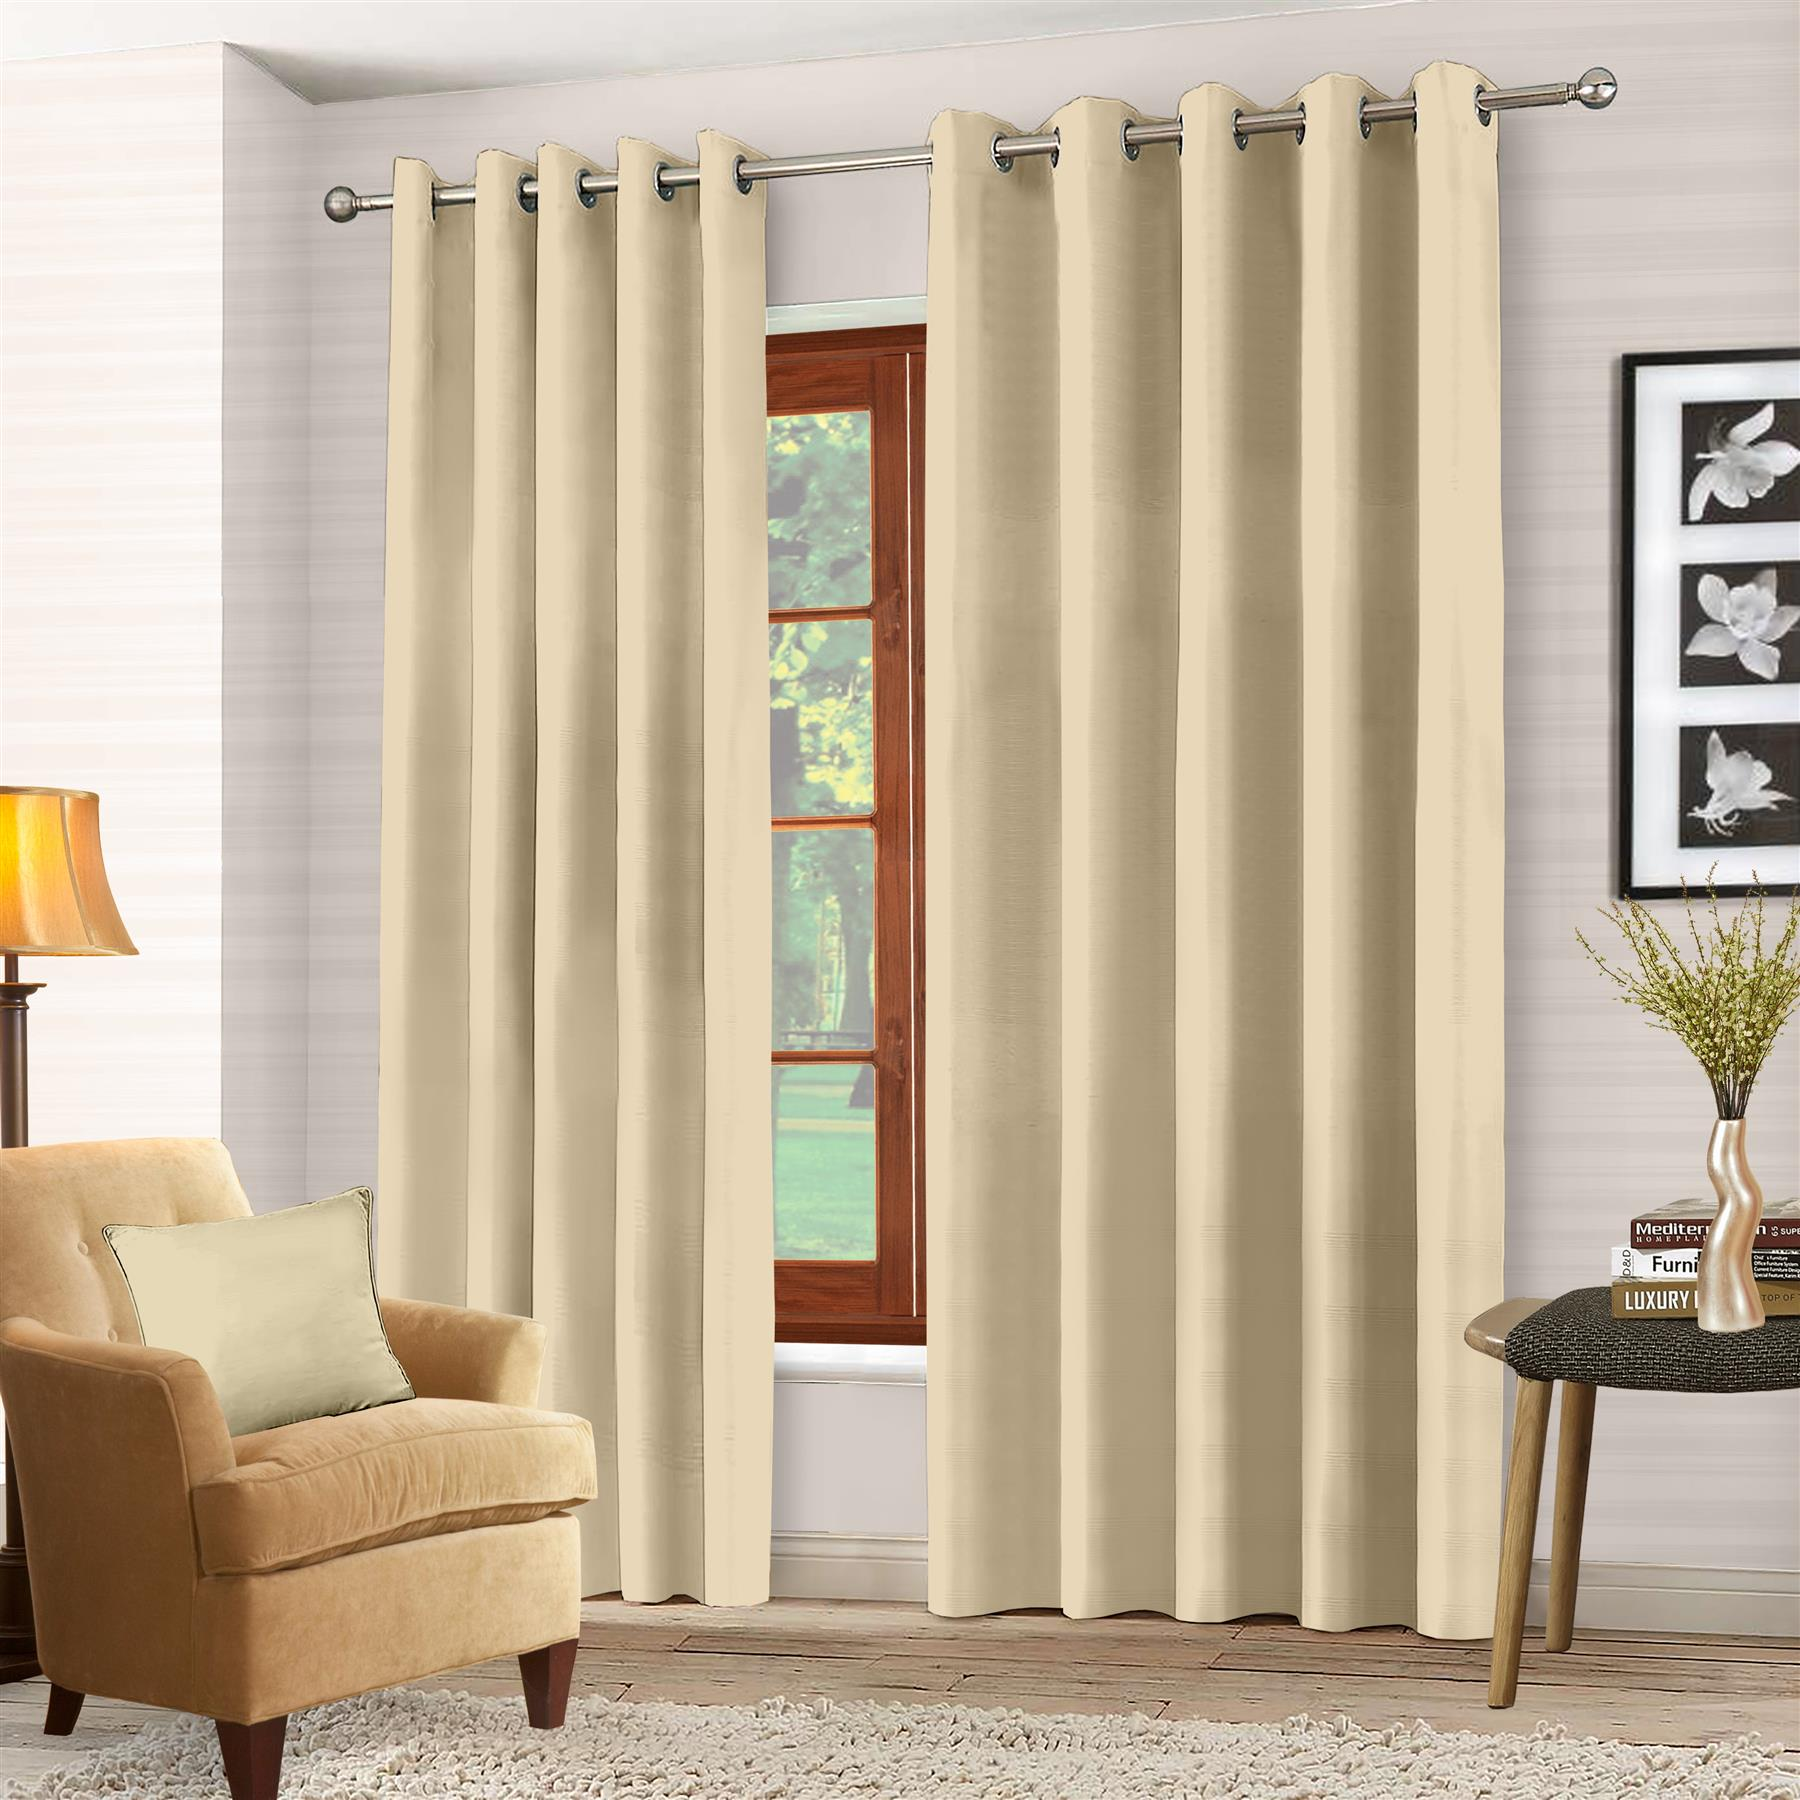 Luxury-Thermal-Blackout-Eyelet-Ring-Top-Curtains-Pair-with-tie-backs thumbnail 24